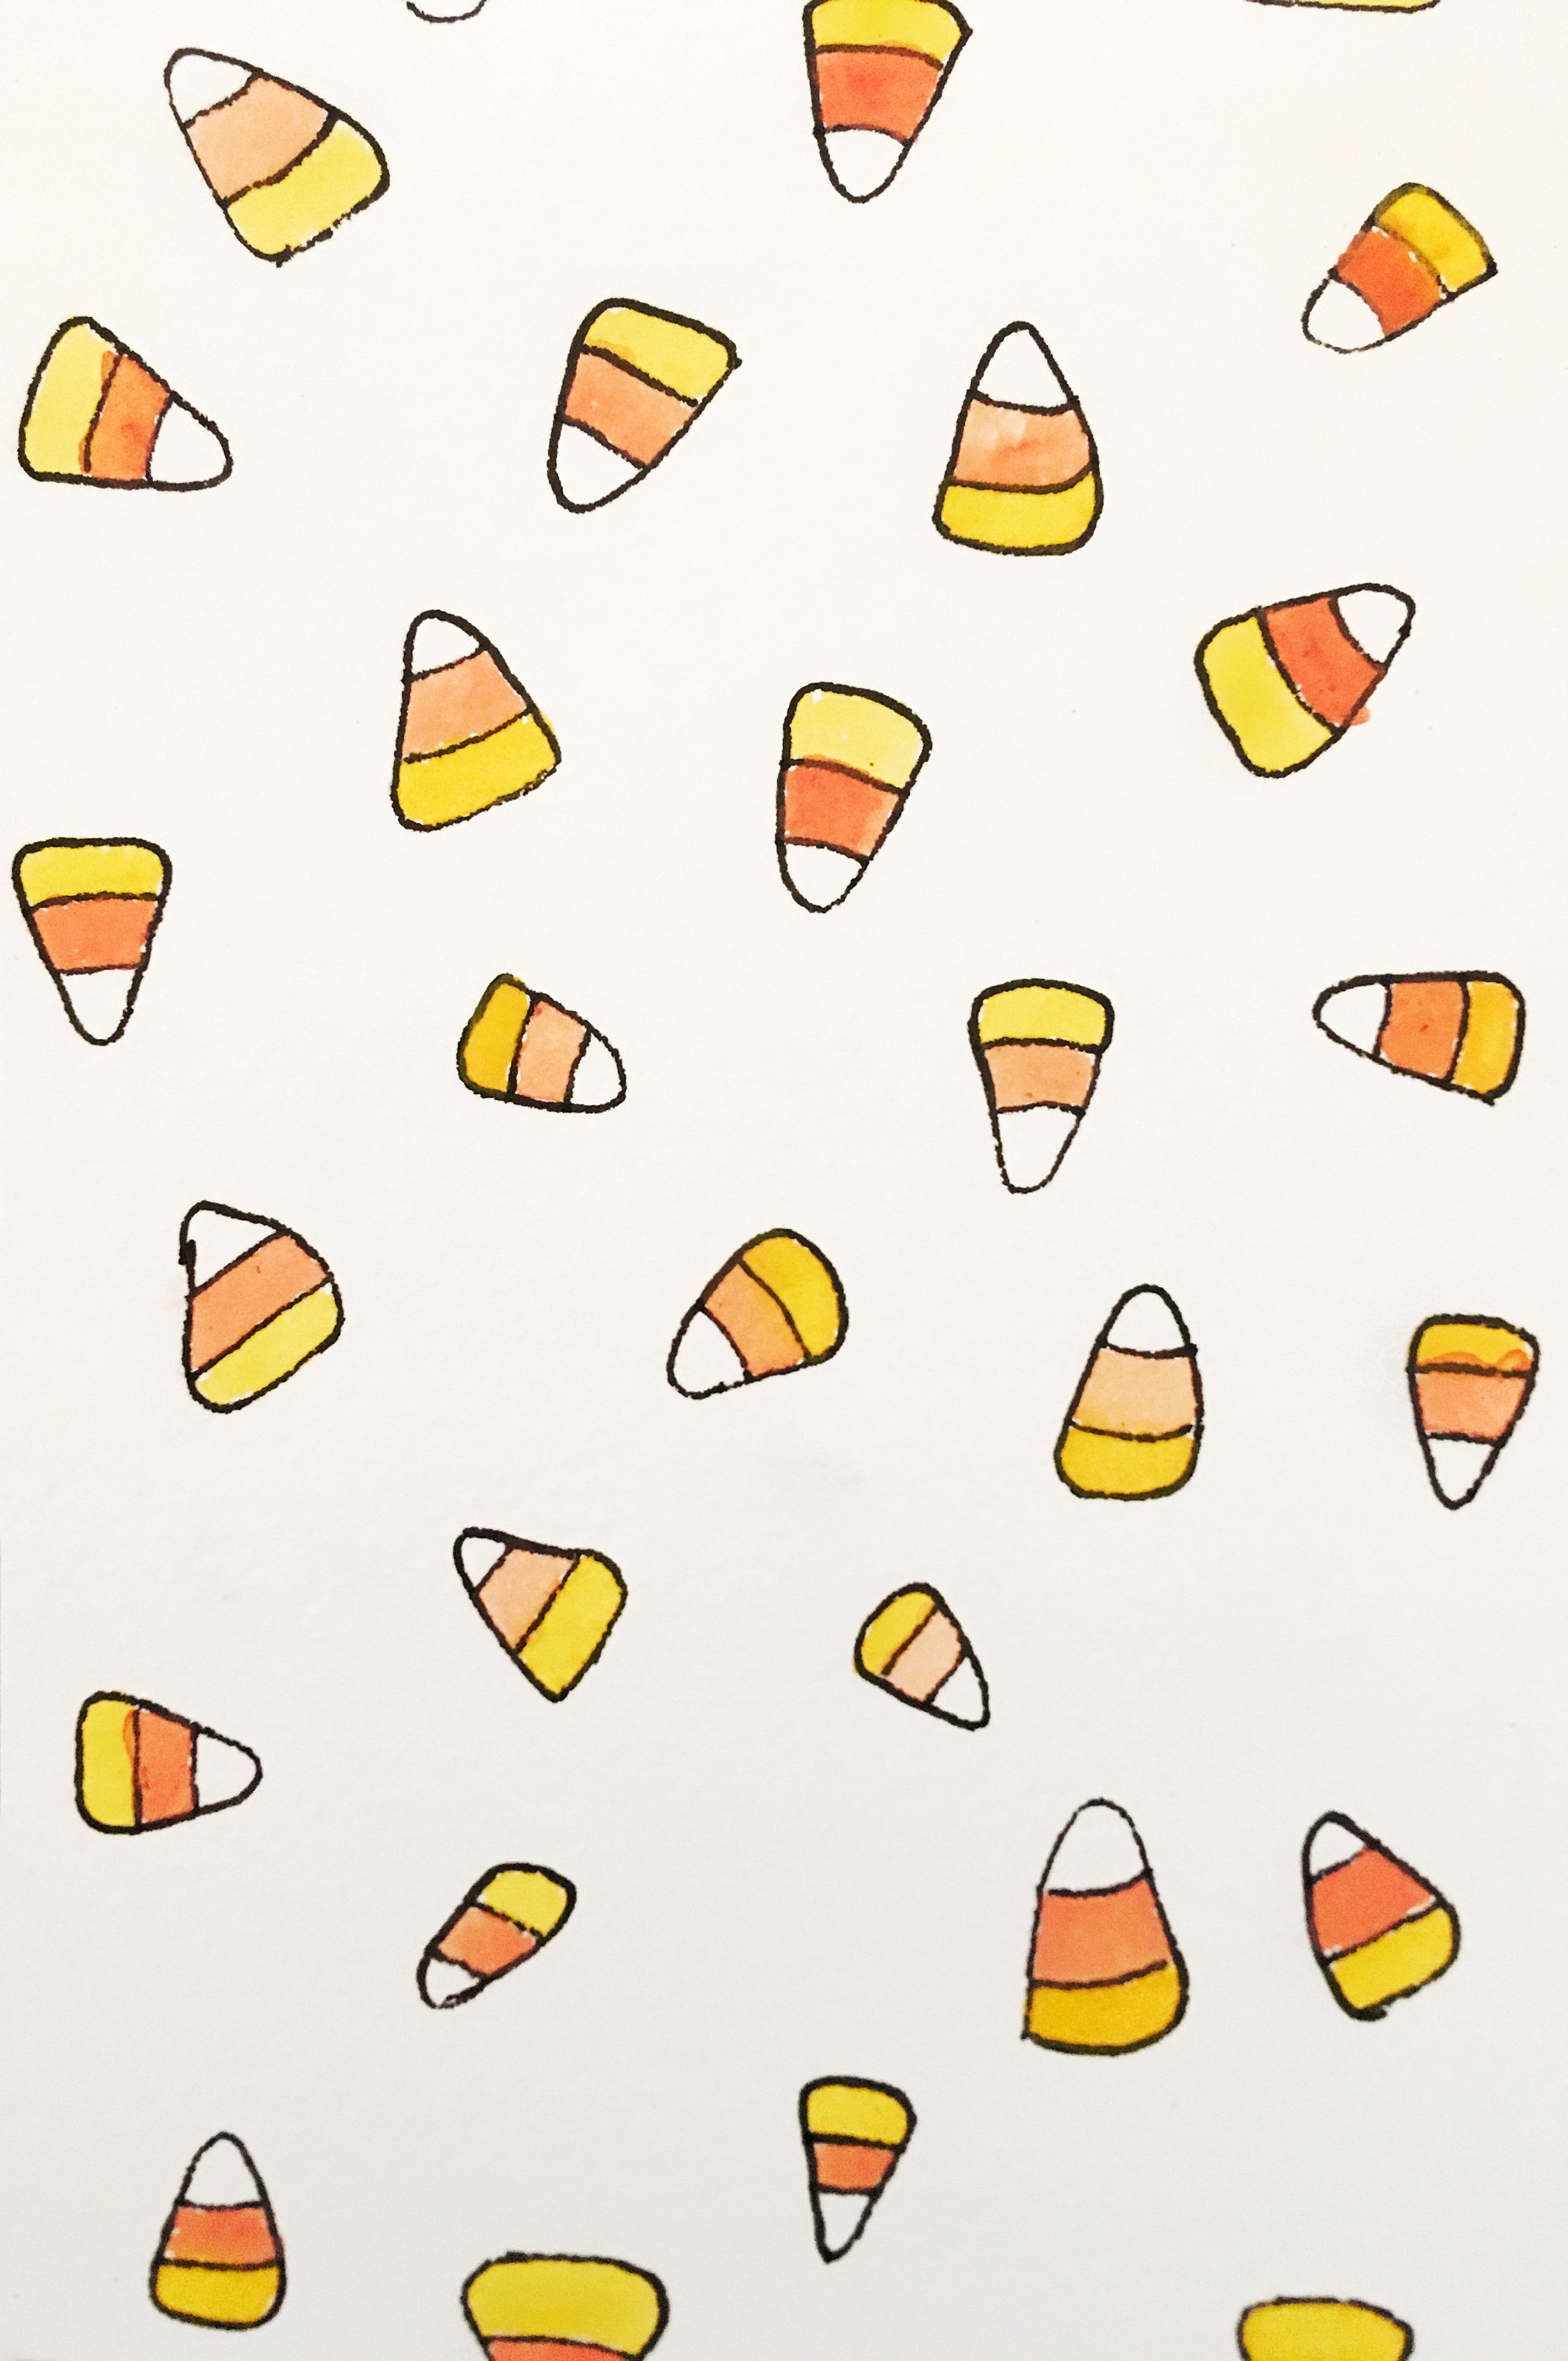 Candy Corn Iphone Watercolor Wallpaper Halloween Wallpaper Iphone Thanksgiving Wallpaper Cute Fall Wallpaper